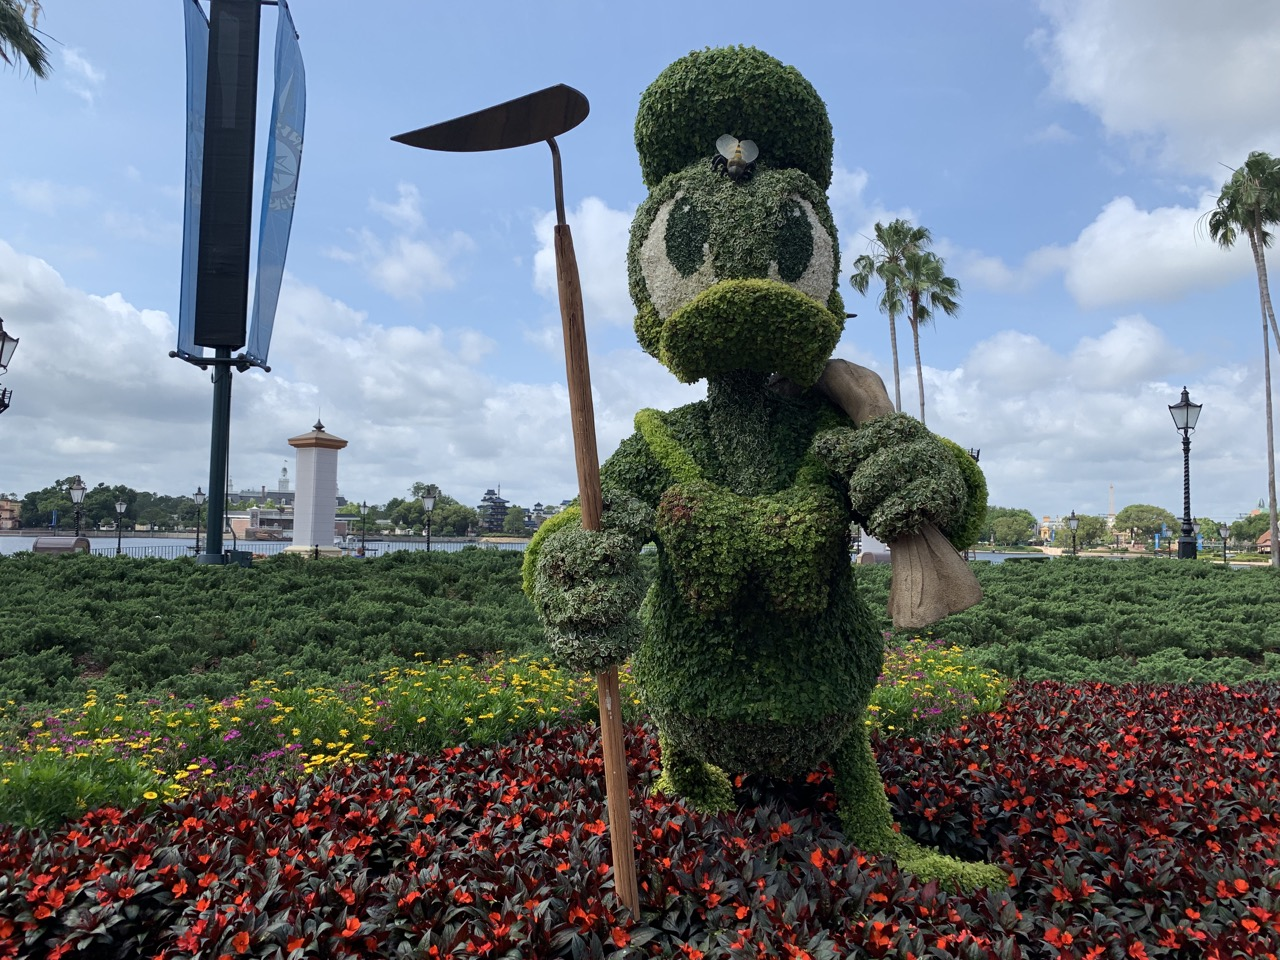 disney world trip report early summer 2019 day six 39 topiary.jpeg